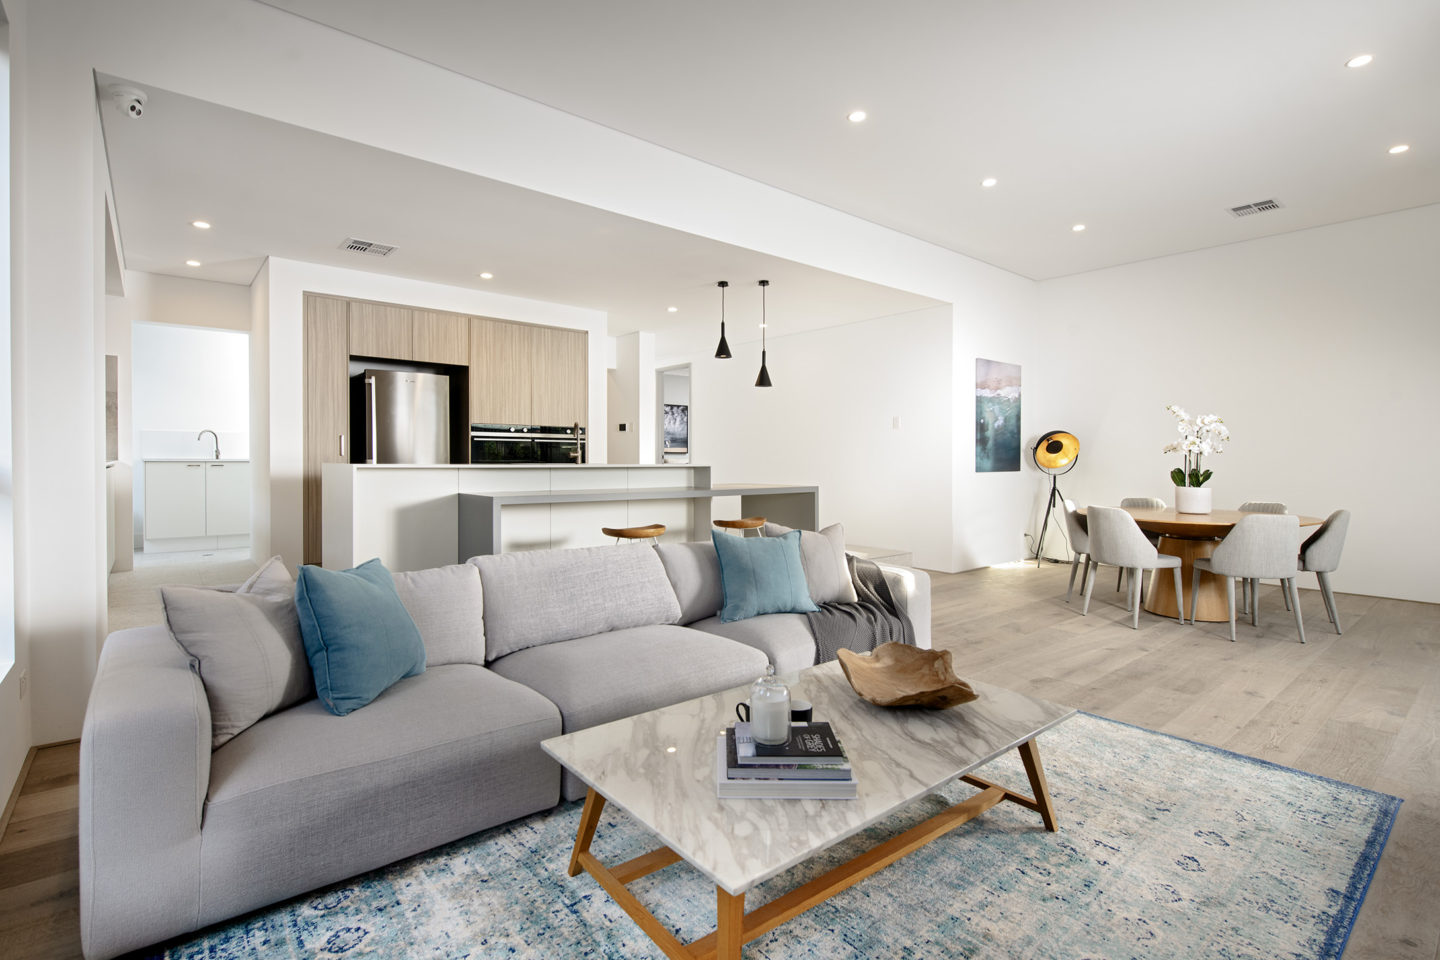 The Mandalay by Metrostyle Homes